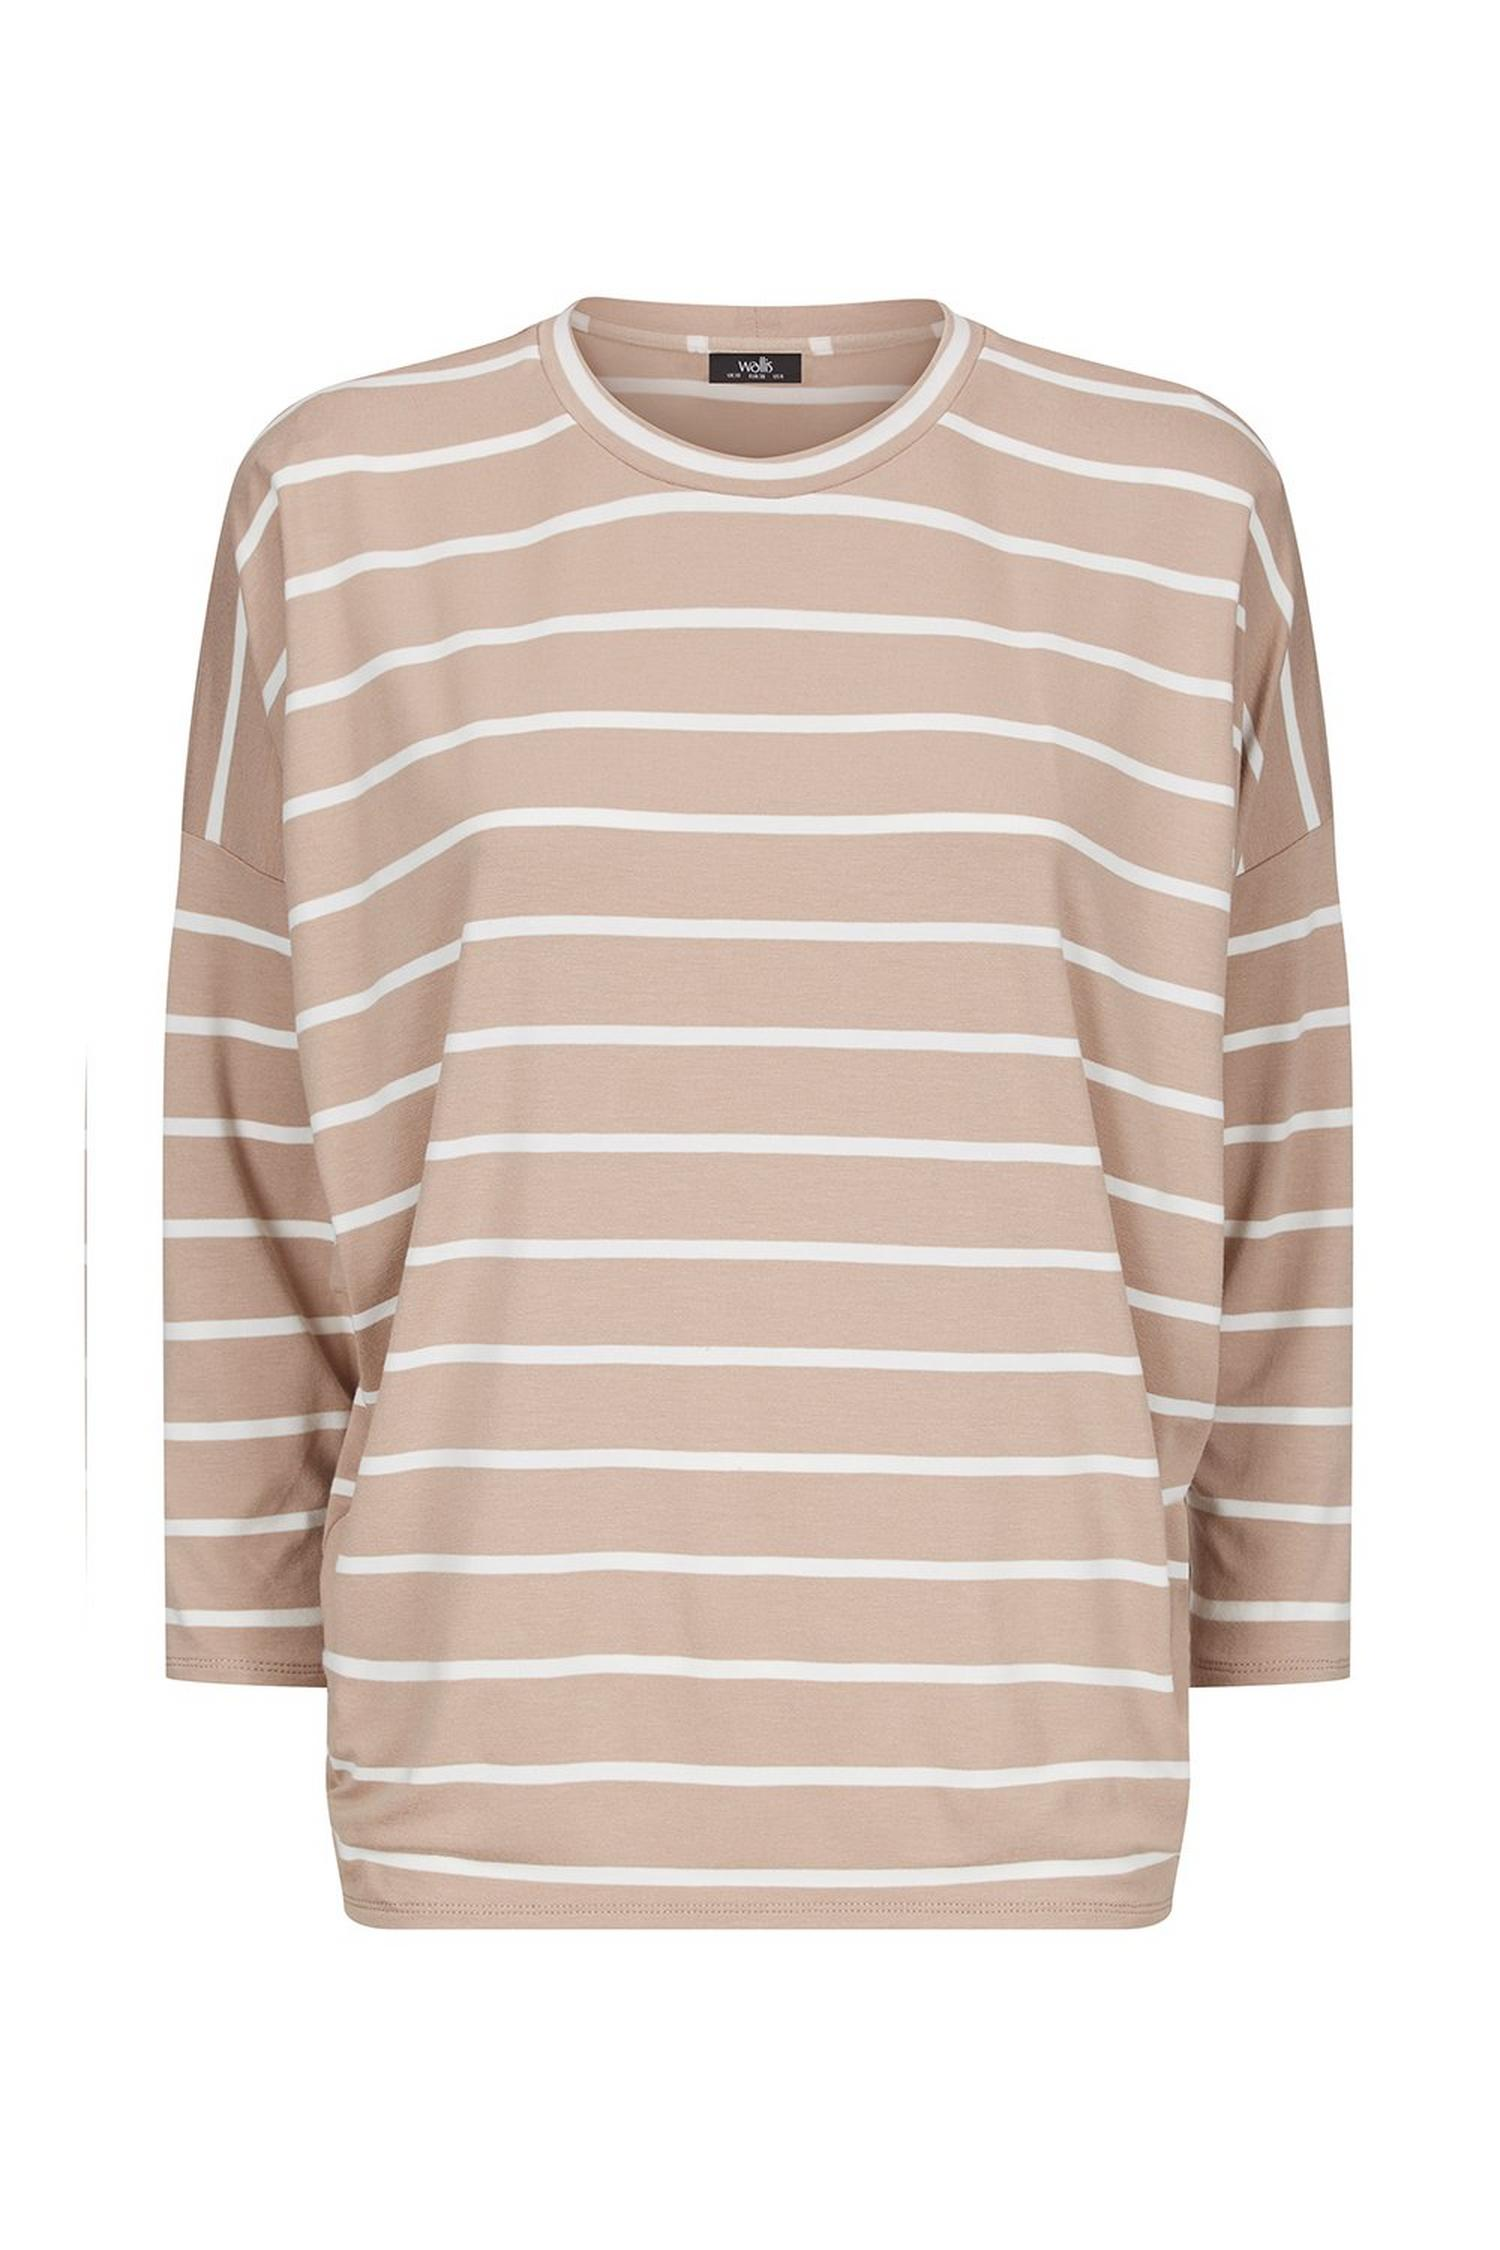 103 Taupe Striped Batwing Top image number 3